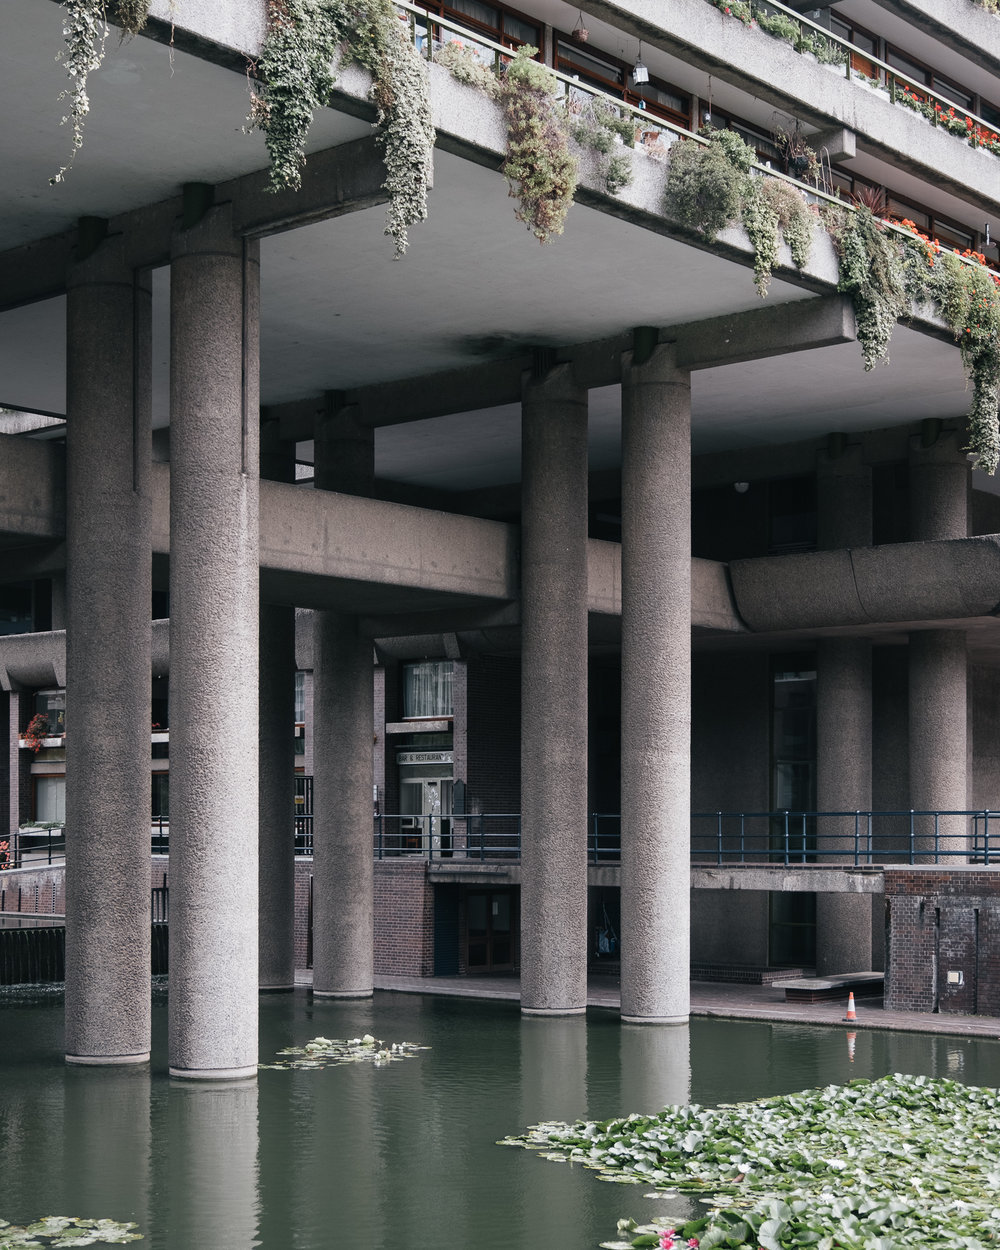 The Barbican lake contains water lilies and other aquatic plants.